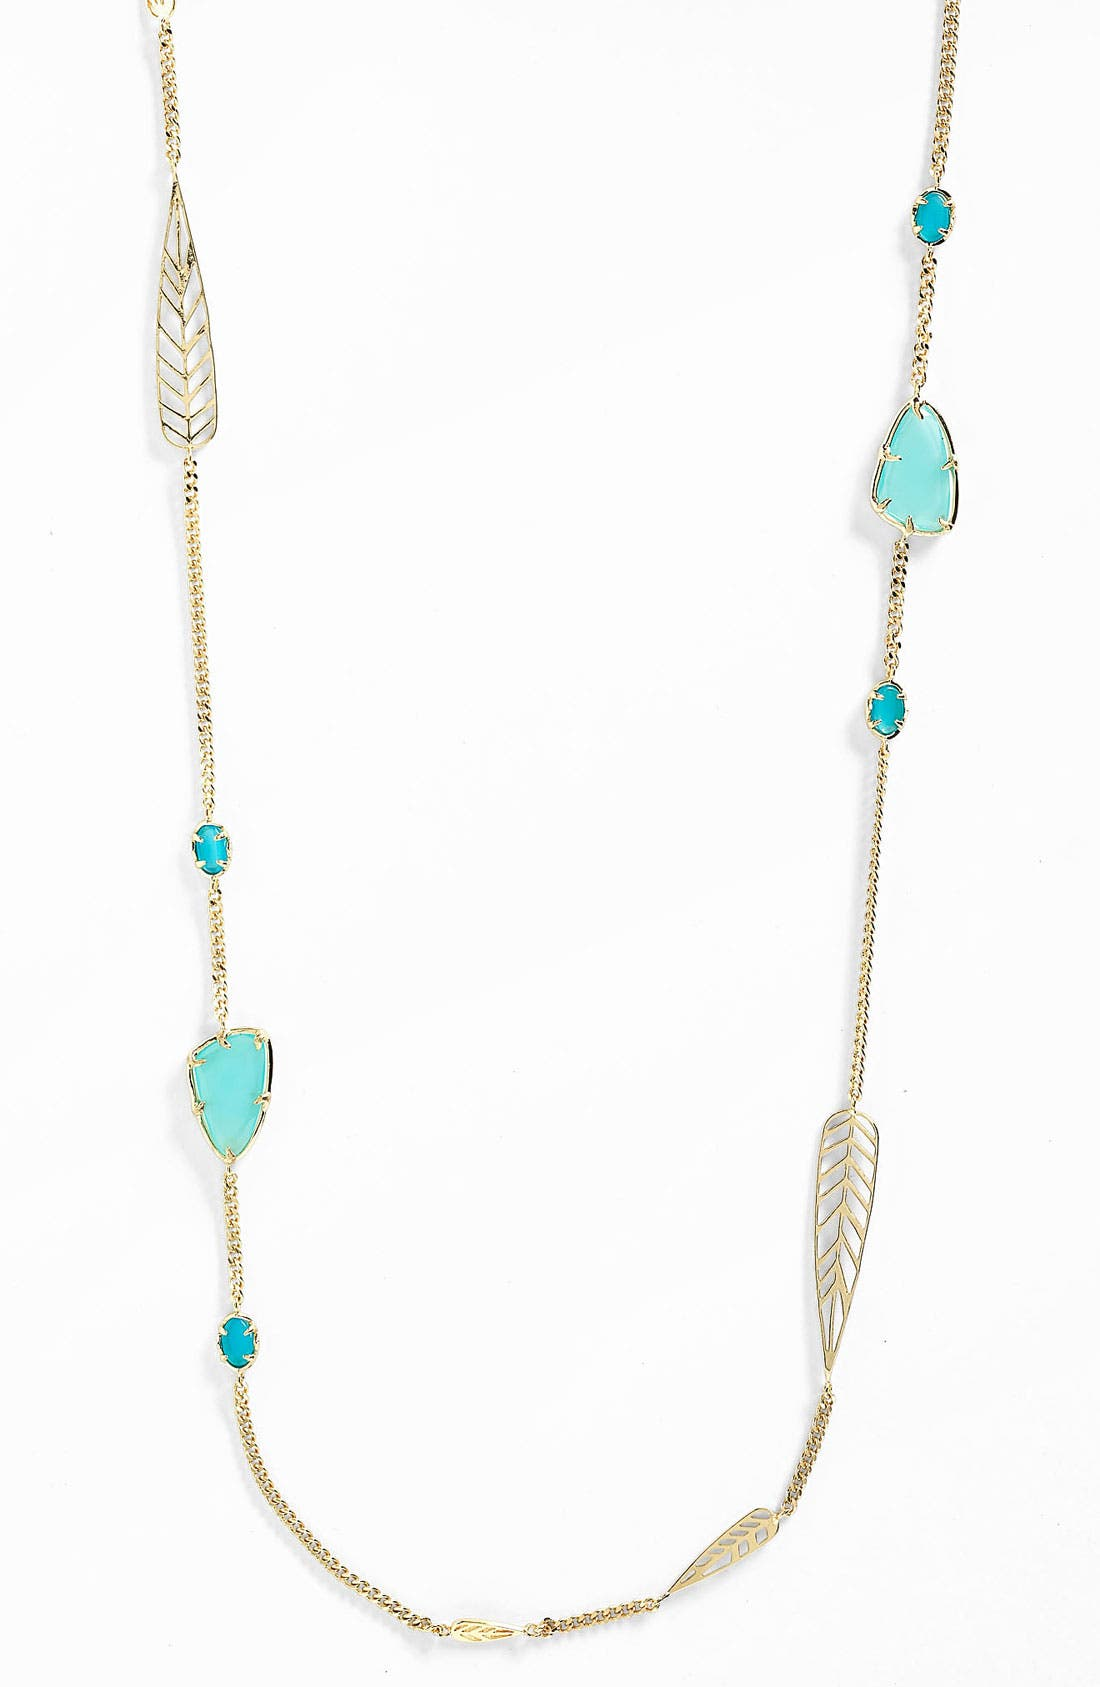 Alternate Image 1 Selected - Kendra Scott 'Marla' Extra Long Station Necklace